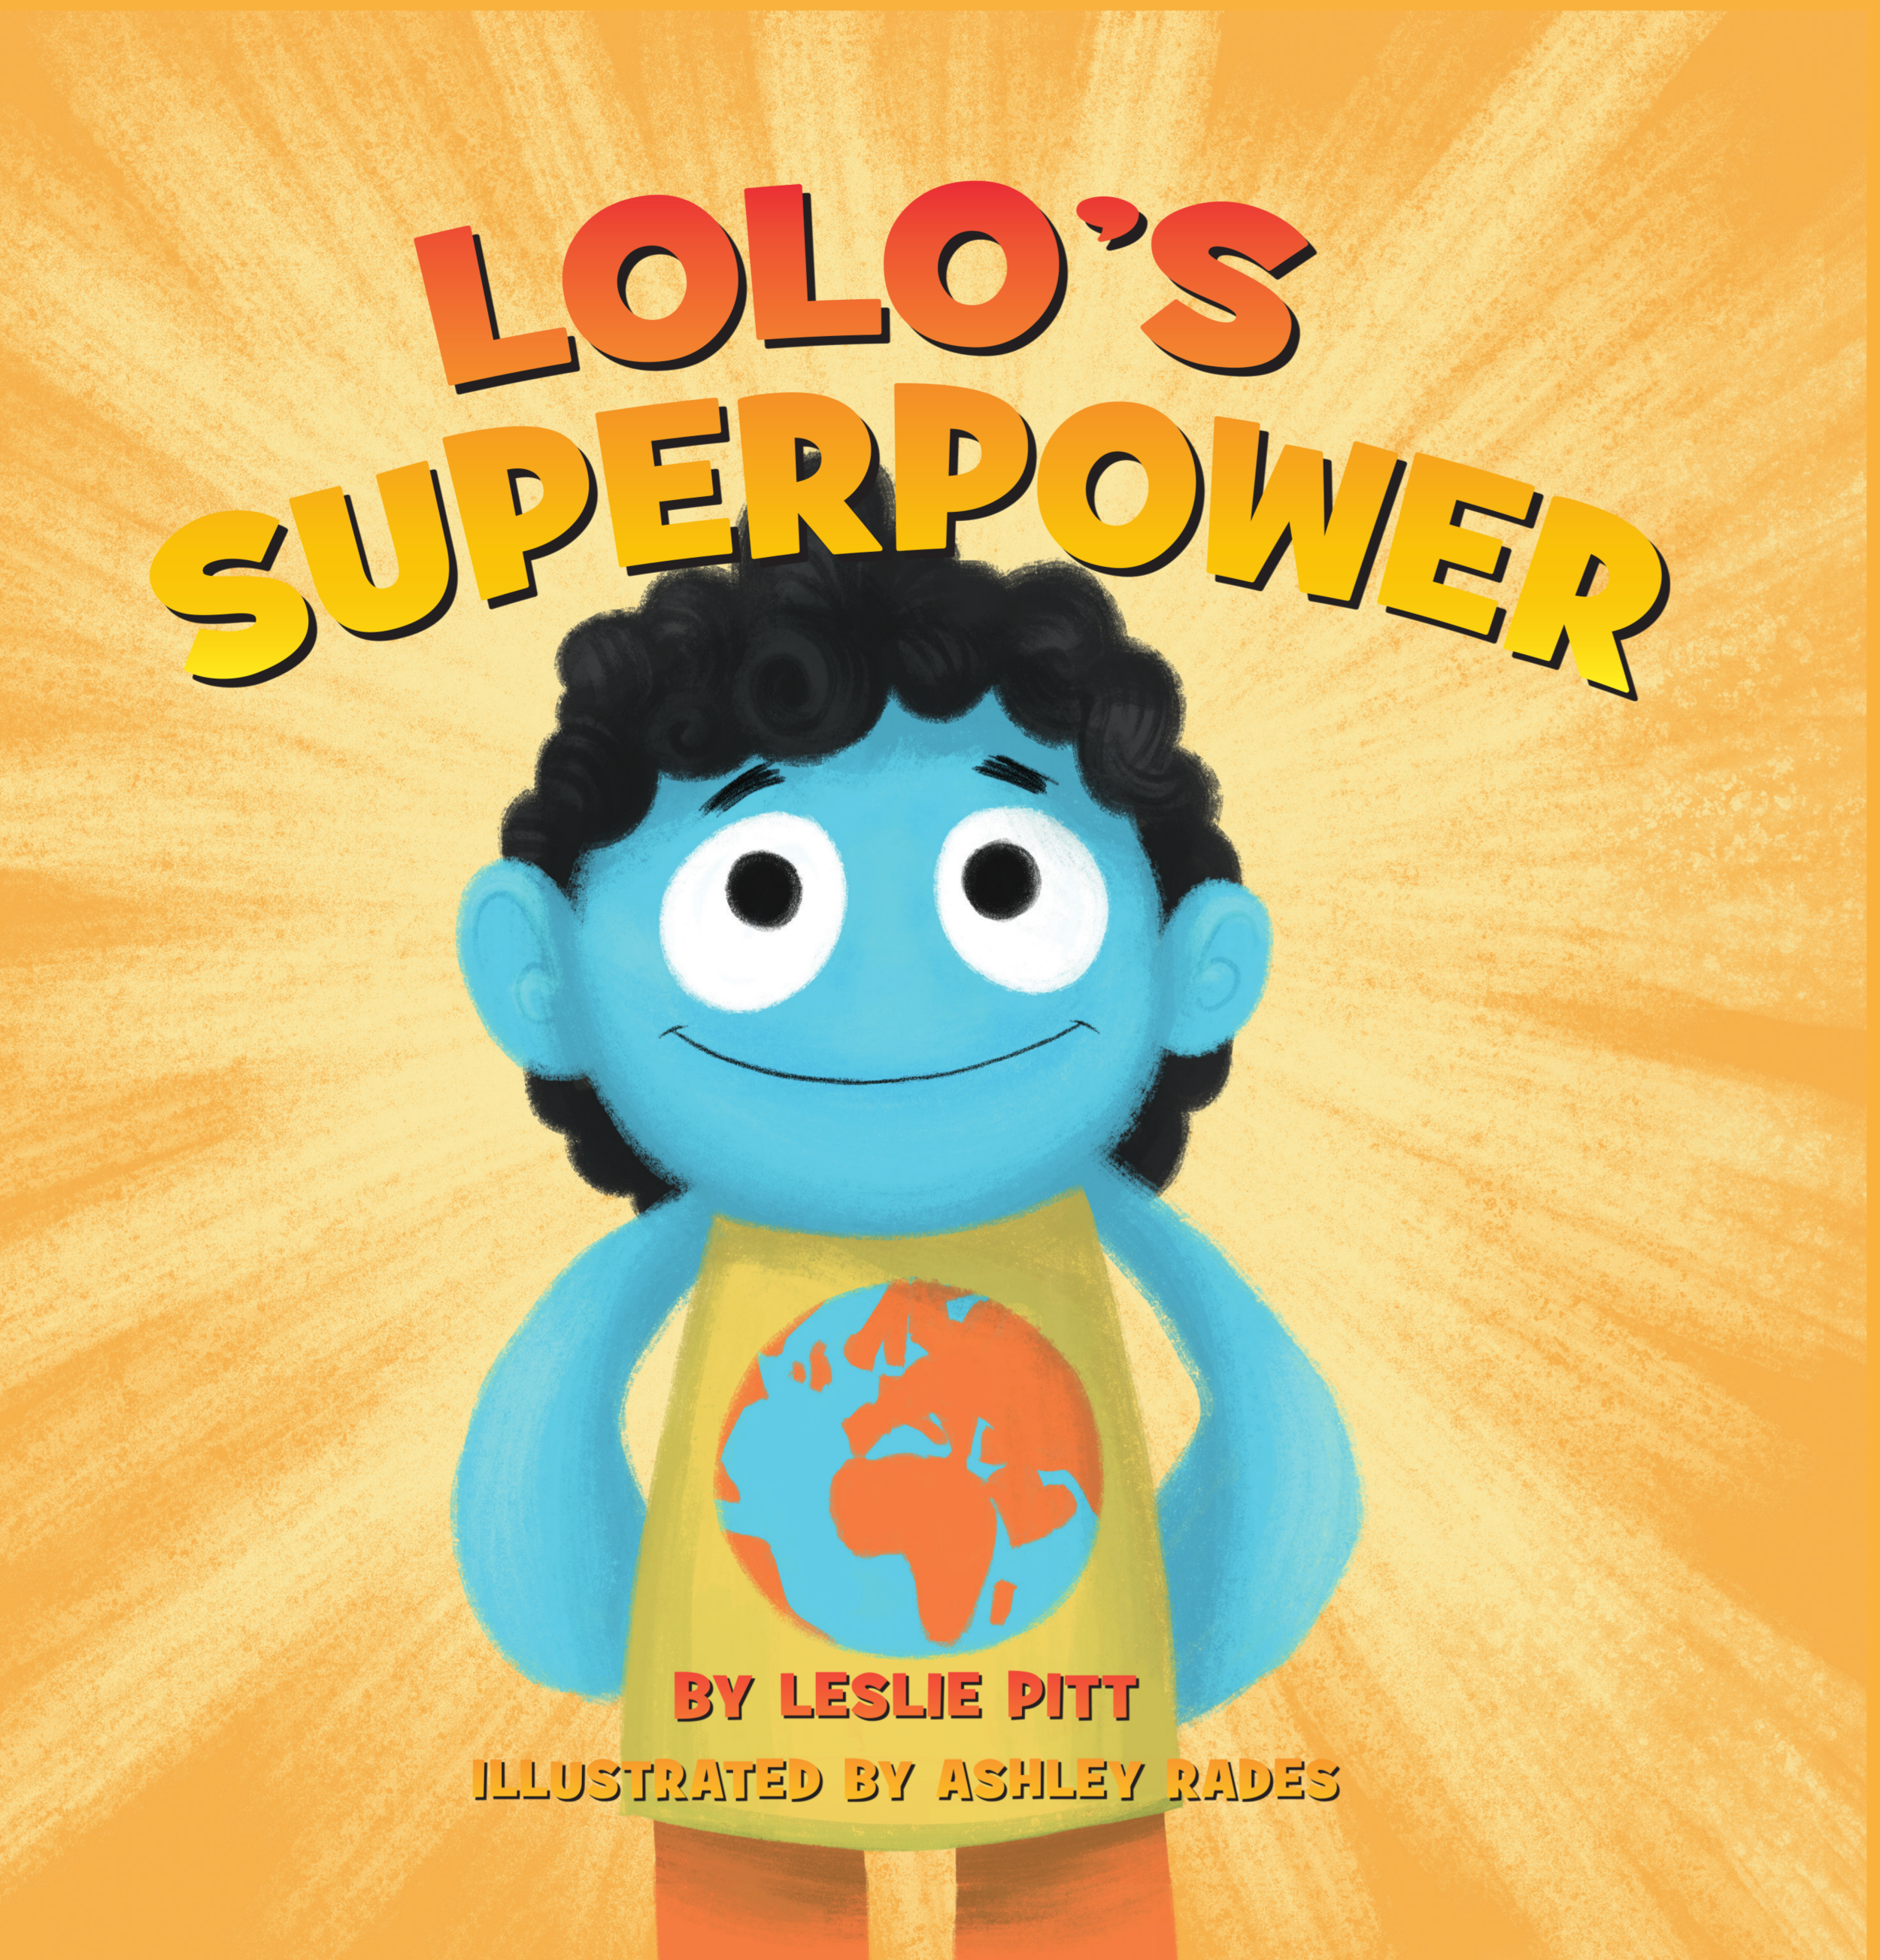 Cover Illustration of  Lolo's Superpower,  a new children's book by Leslie Pitt. Illustration credit: Ashley Rades